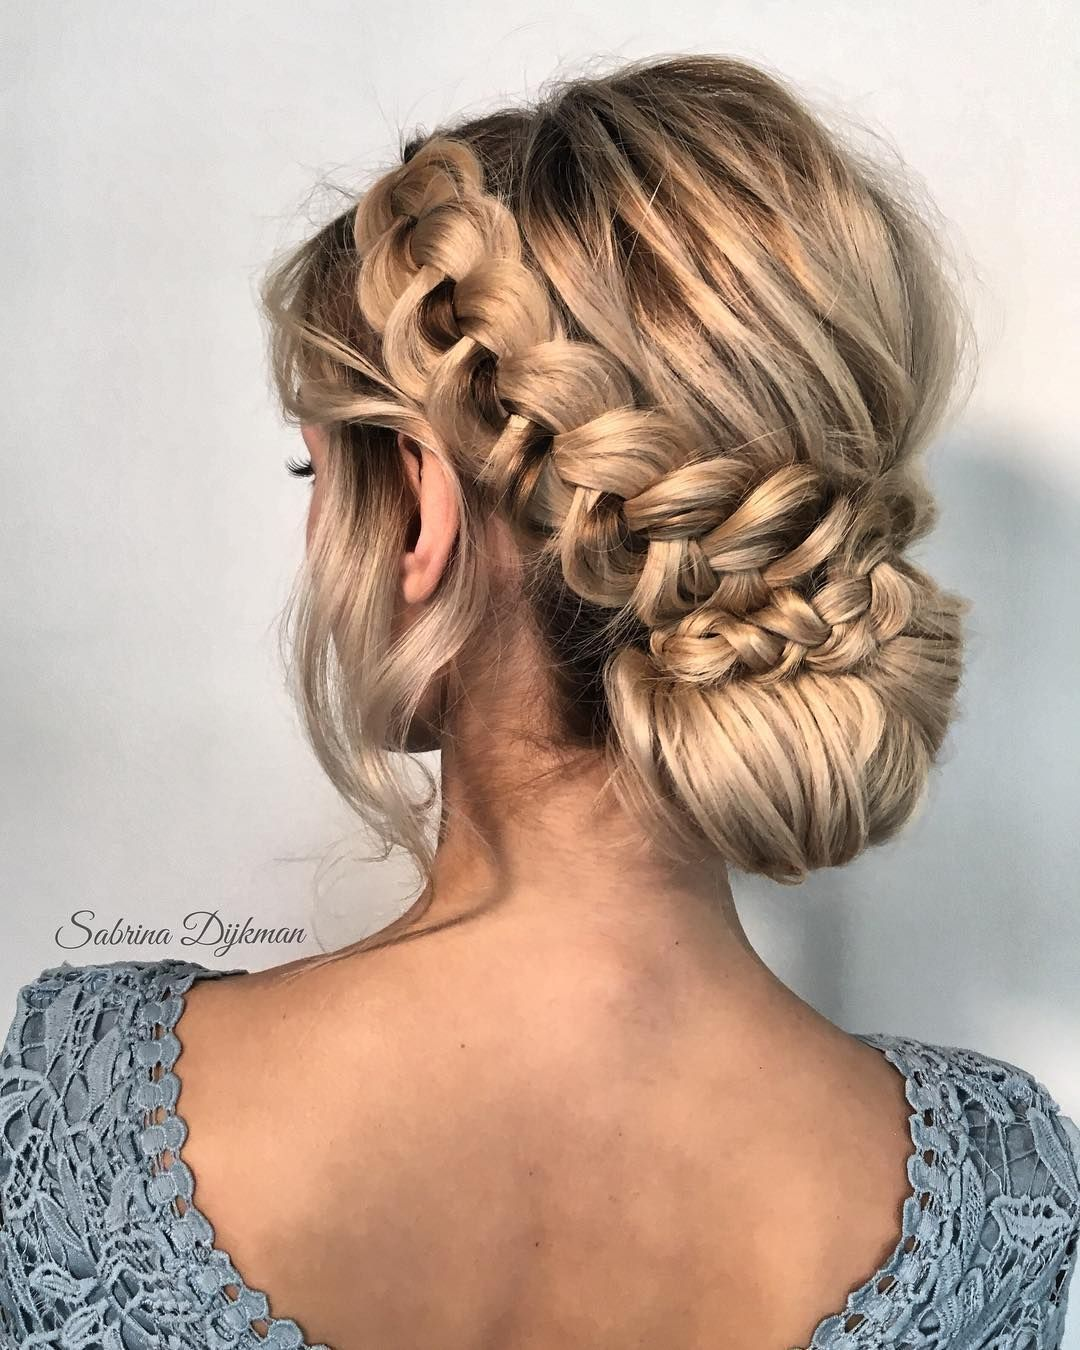 Beautiful Wedding Braided Updo Hairstyle Messy Updo Wedding Hairstyles Chignon Messy Updo Hai Braided Hairstyles Updo Braids For Long Hair Long Hair Styles